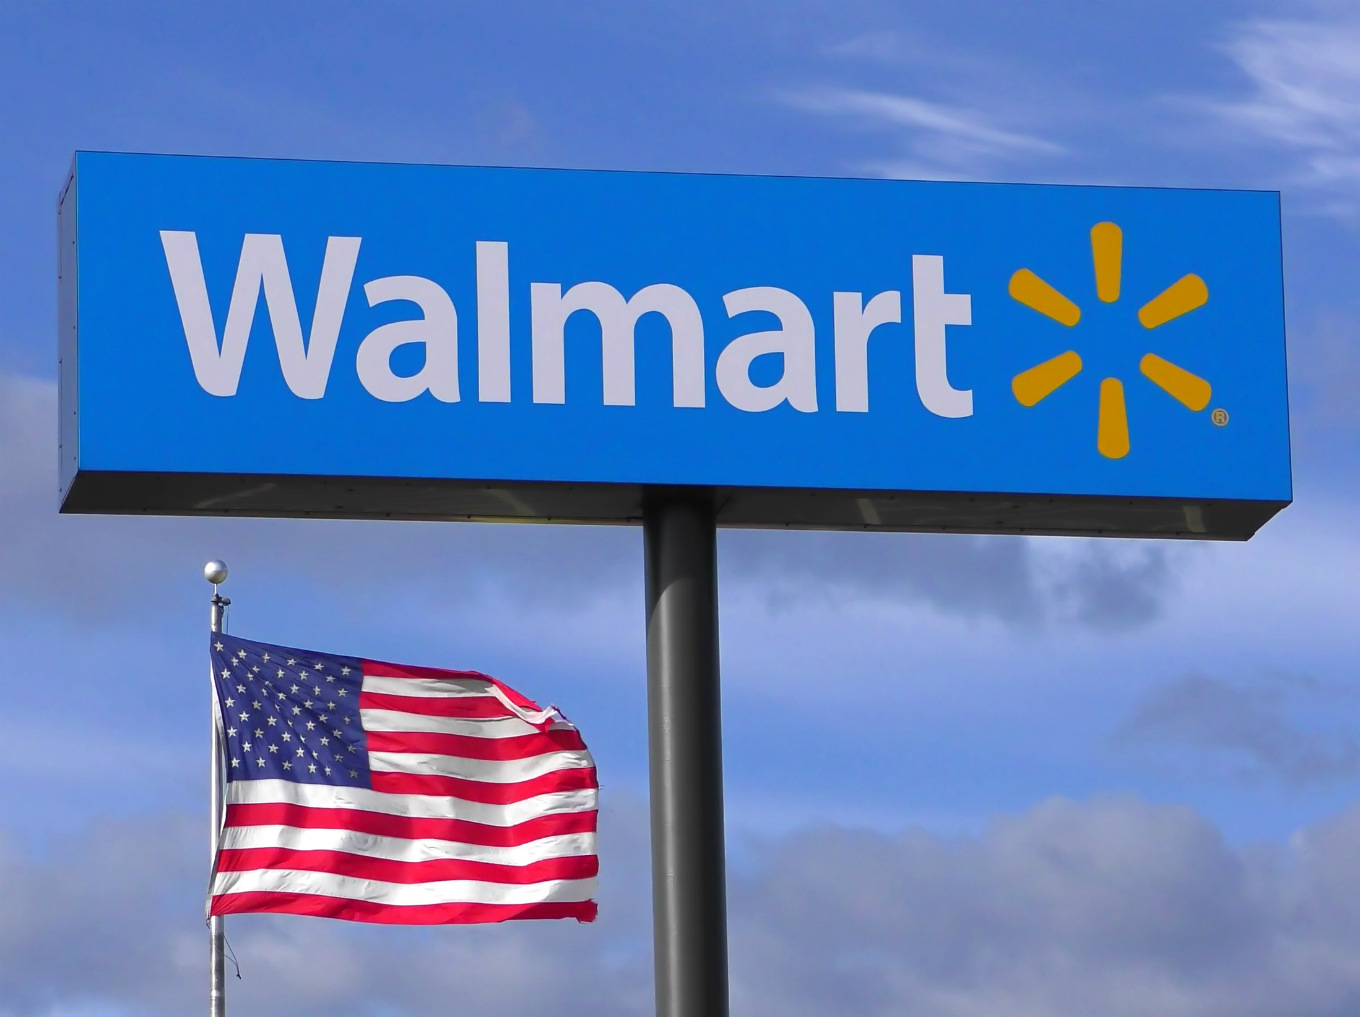 Walmart CEO McMillon Disappointed Over India's New FDI Ecommerce Rule